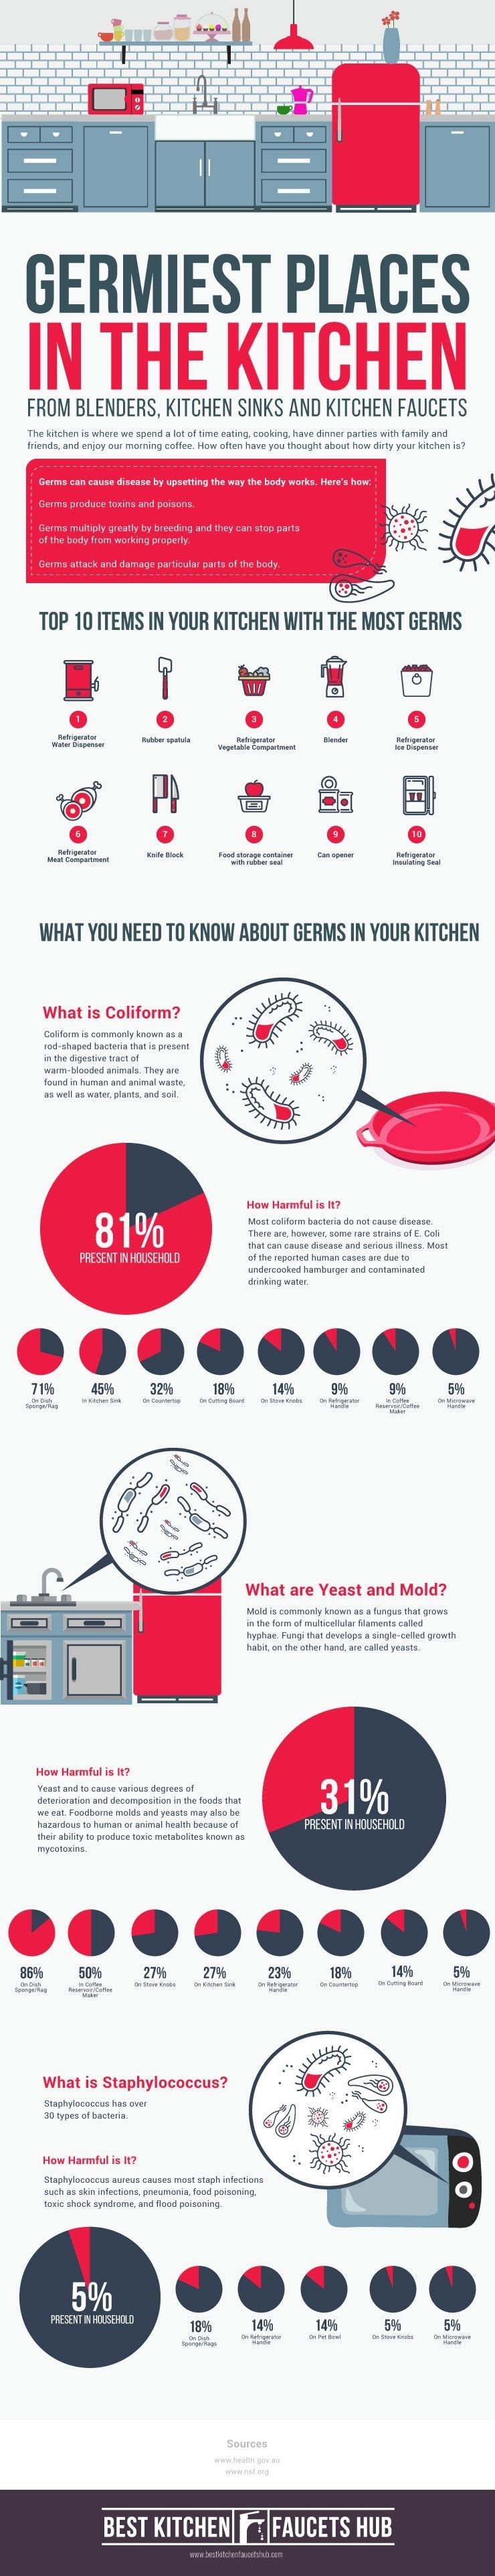 The Germiest Places in your Kitchen #infographic